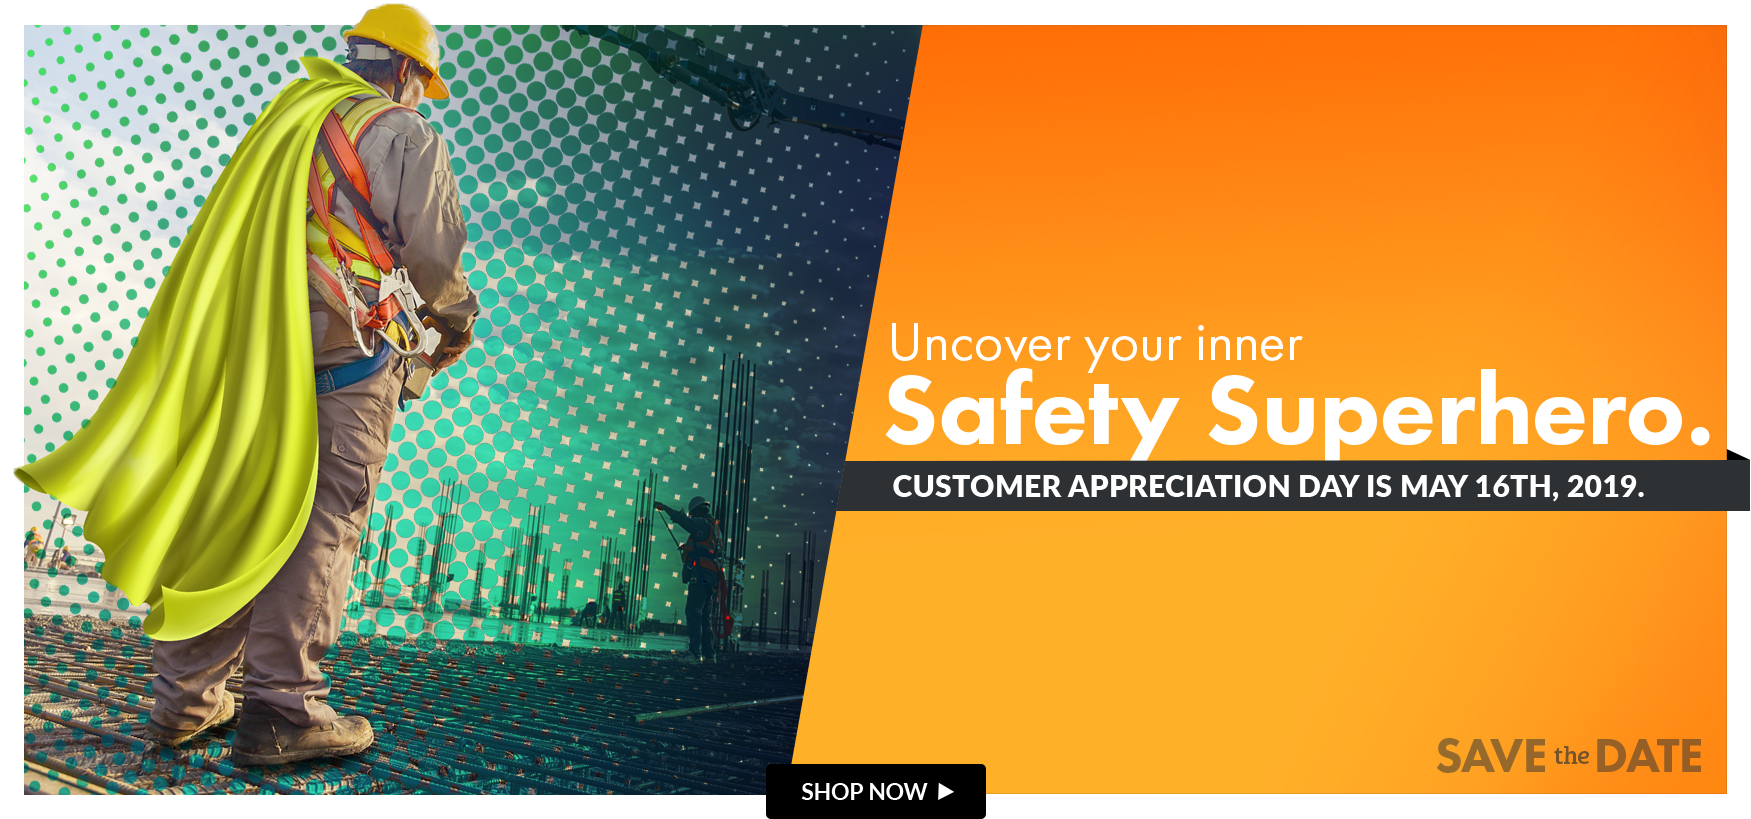 Customer Appreciation Day 2019 Event, May 16